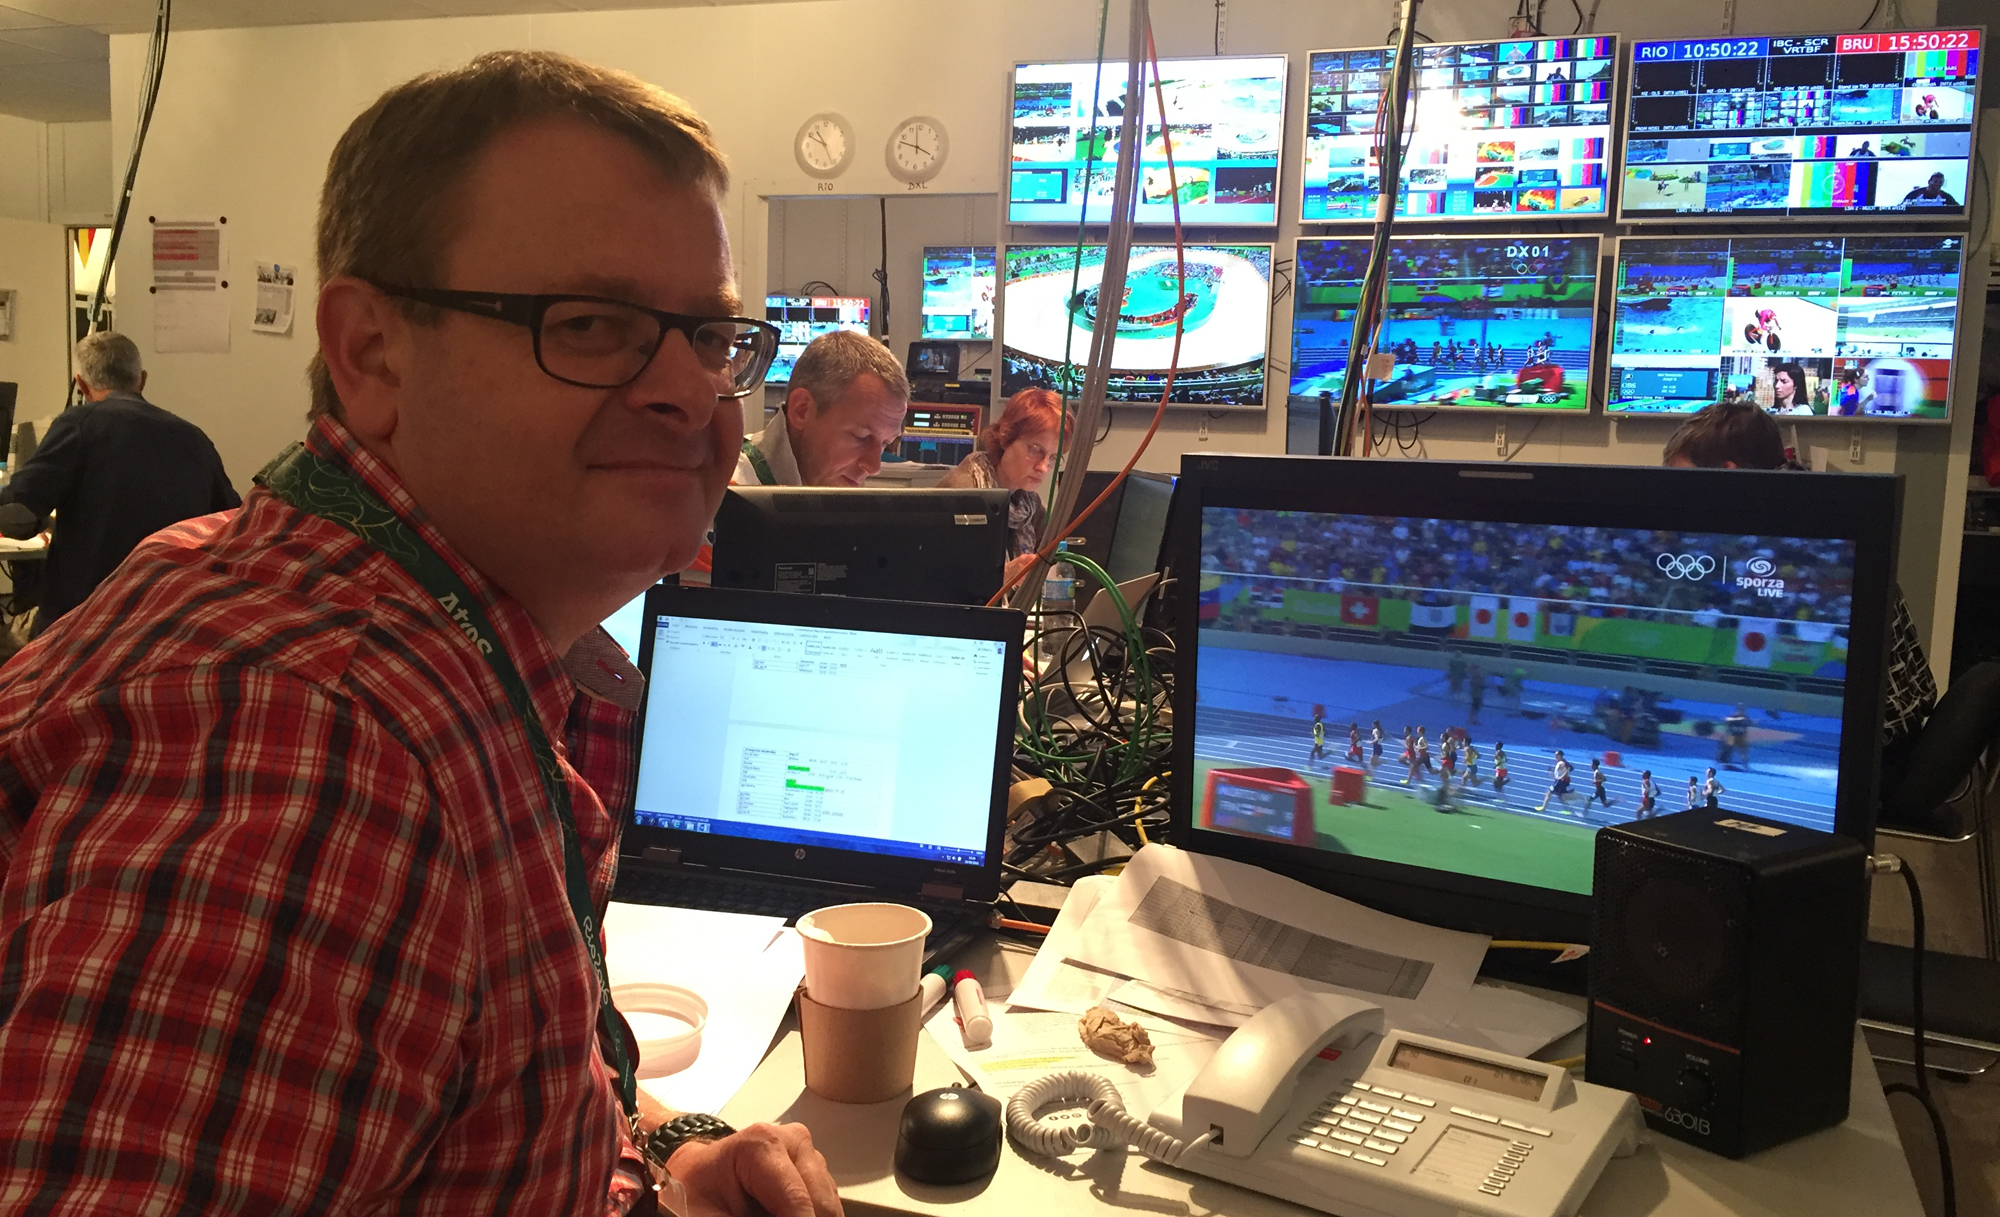 Lead producer Jo Deferme oversees the Olympic production of Belgian broadcaster VRT at the IBC in Rio.